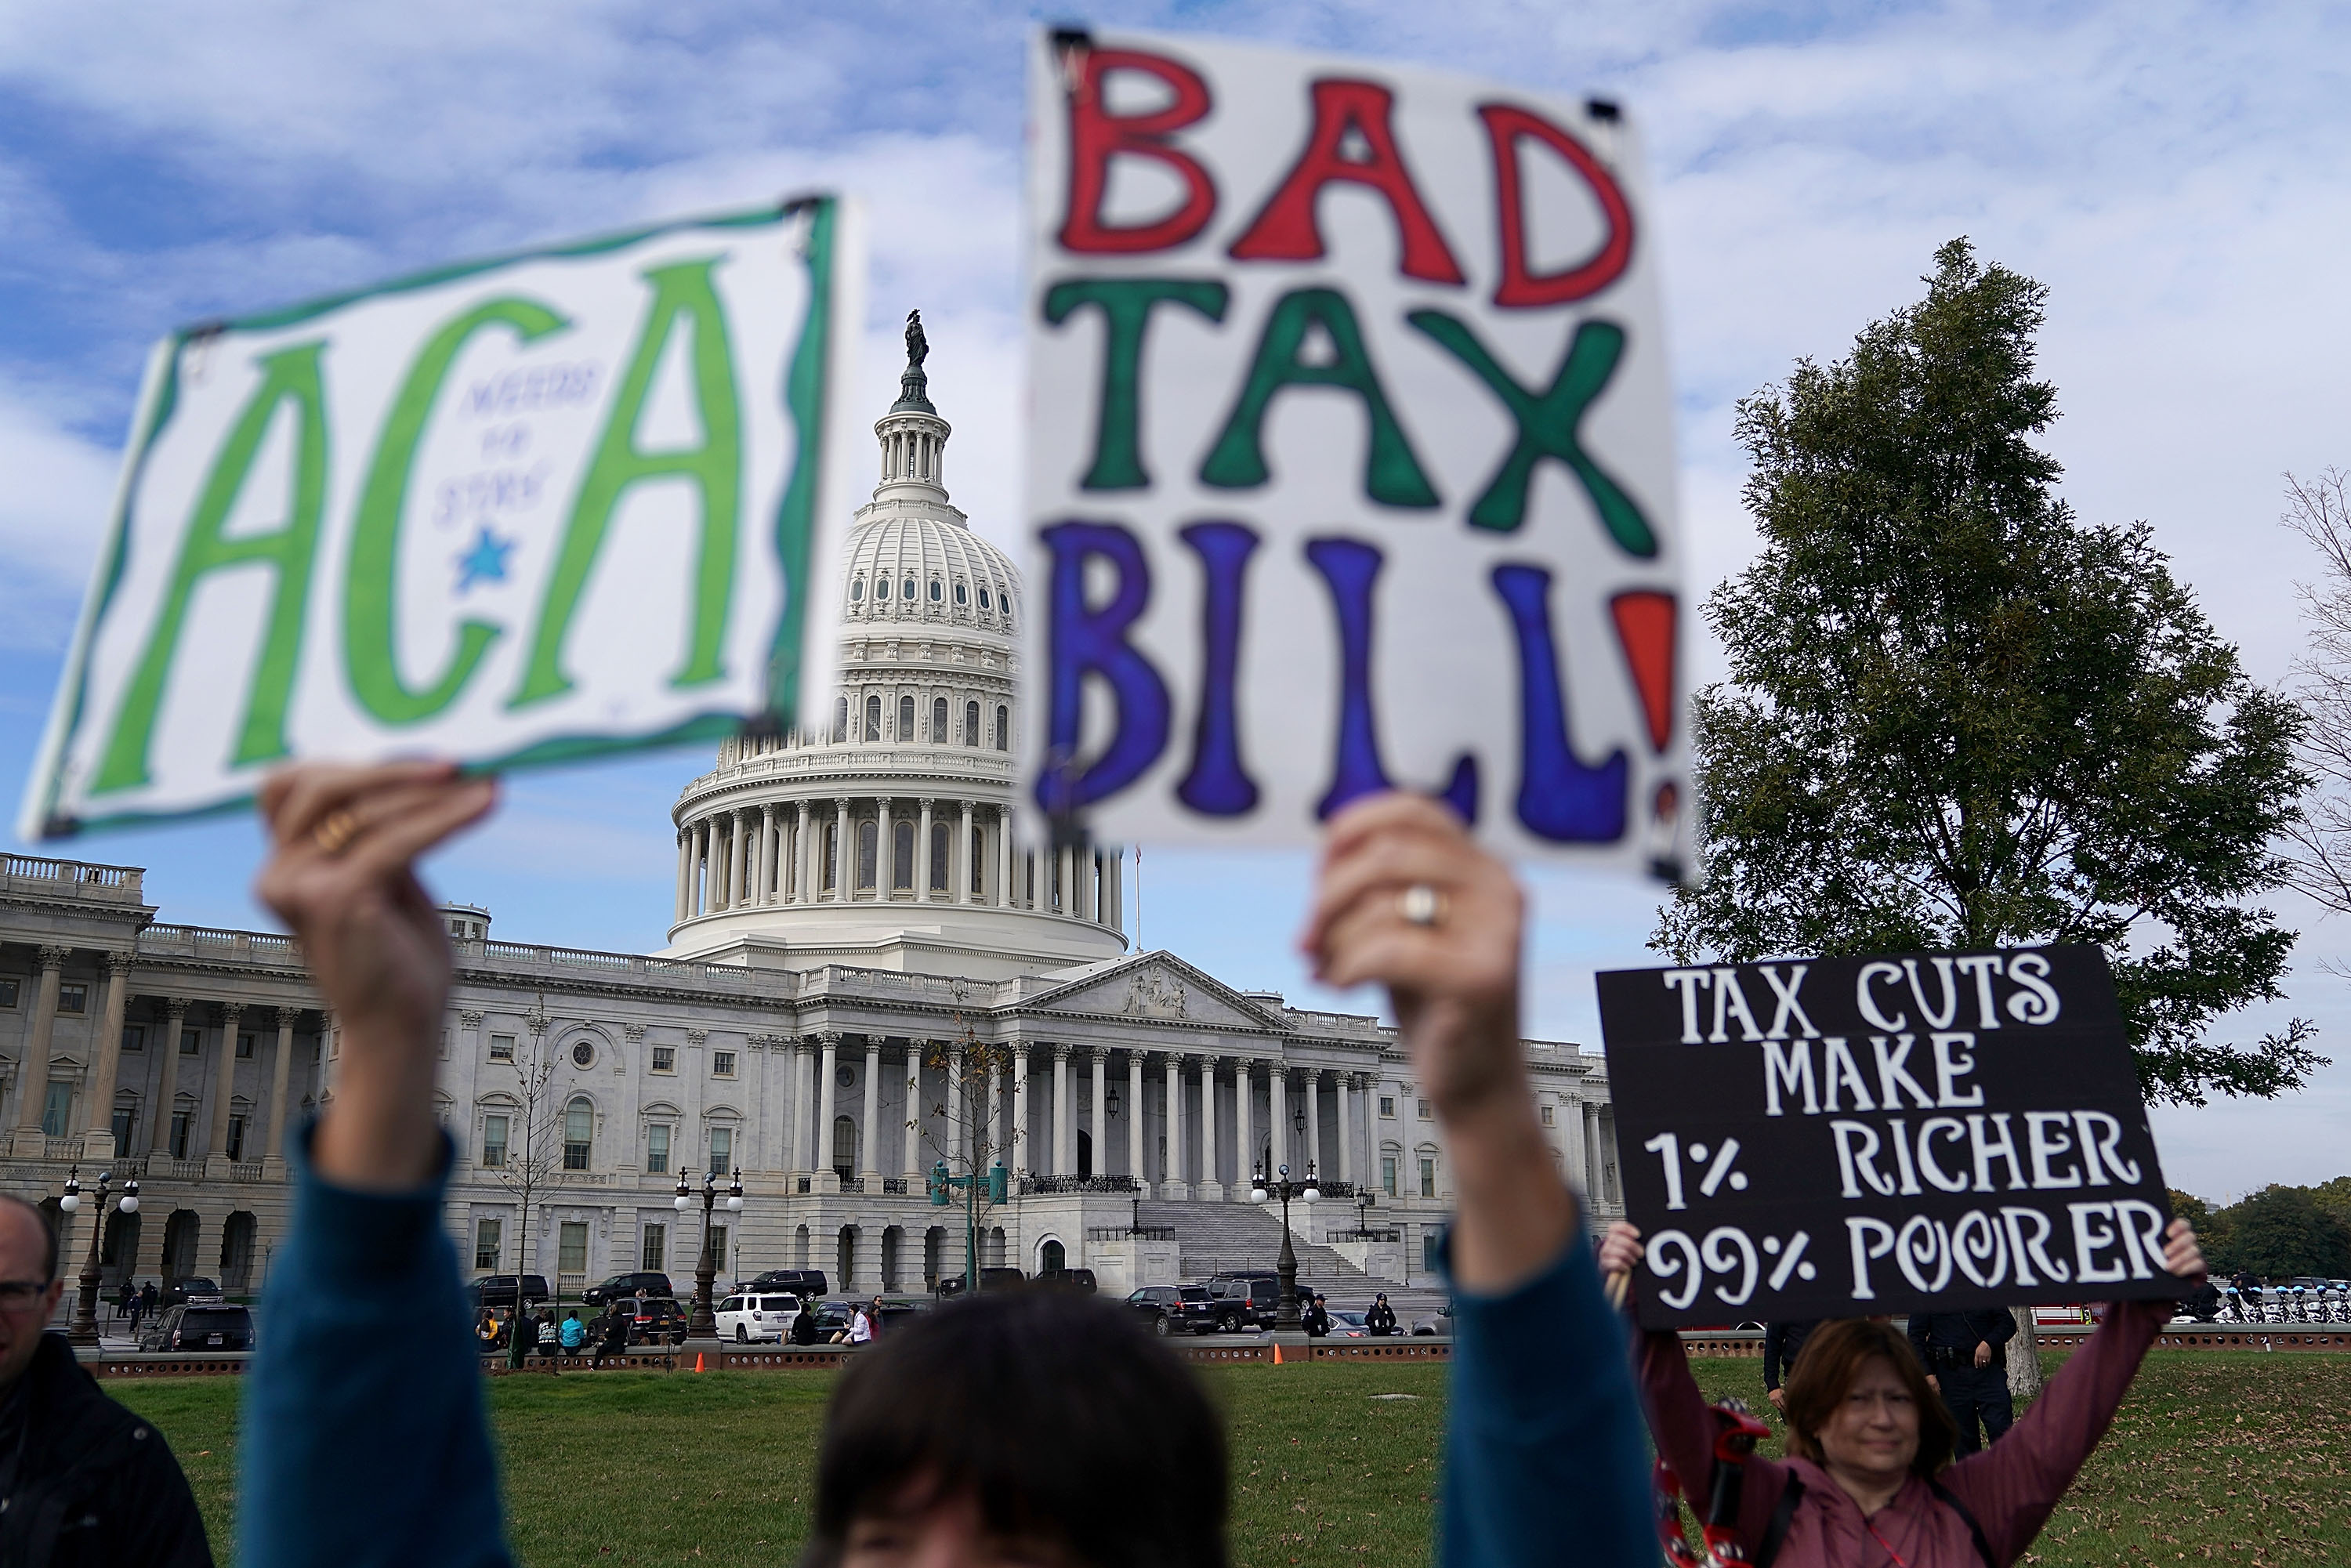 Demonstrators join a rally against the proposed Republican tax reform legislation on the east side of the U.S. Capitol on Nov. 15, 2017 in Washington, D.C.